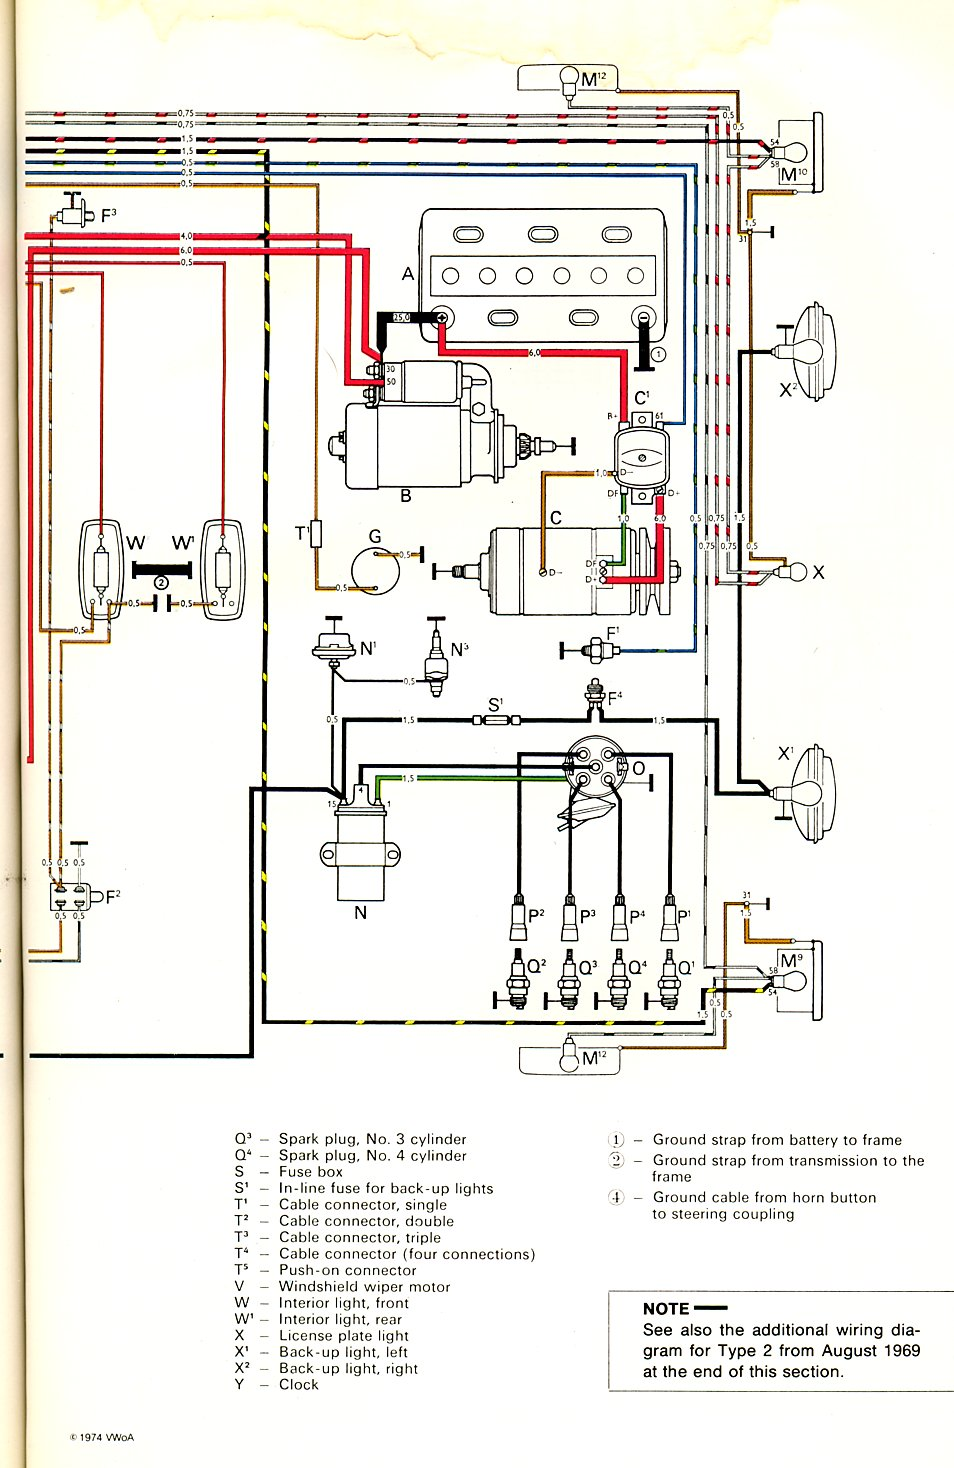 baybus_70b 1970 bus wiring diagram thegoldenbug com Volkswagen Type 2 Wiring Harness at crackthecode.co